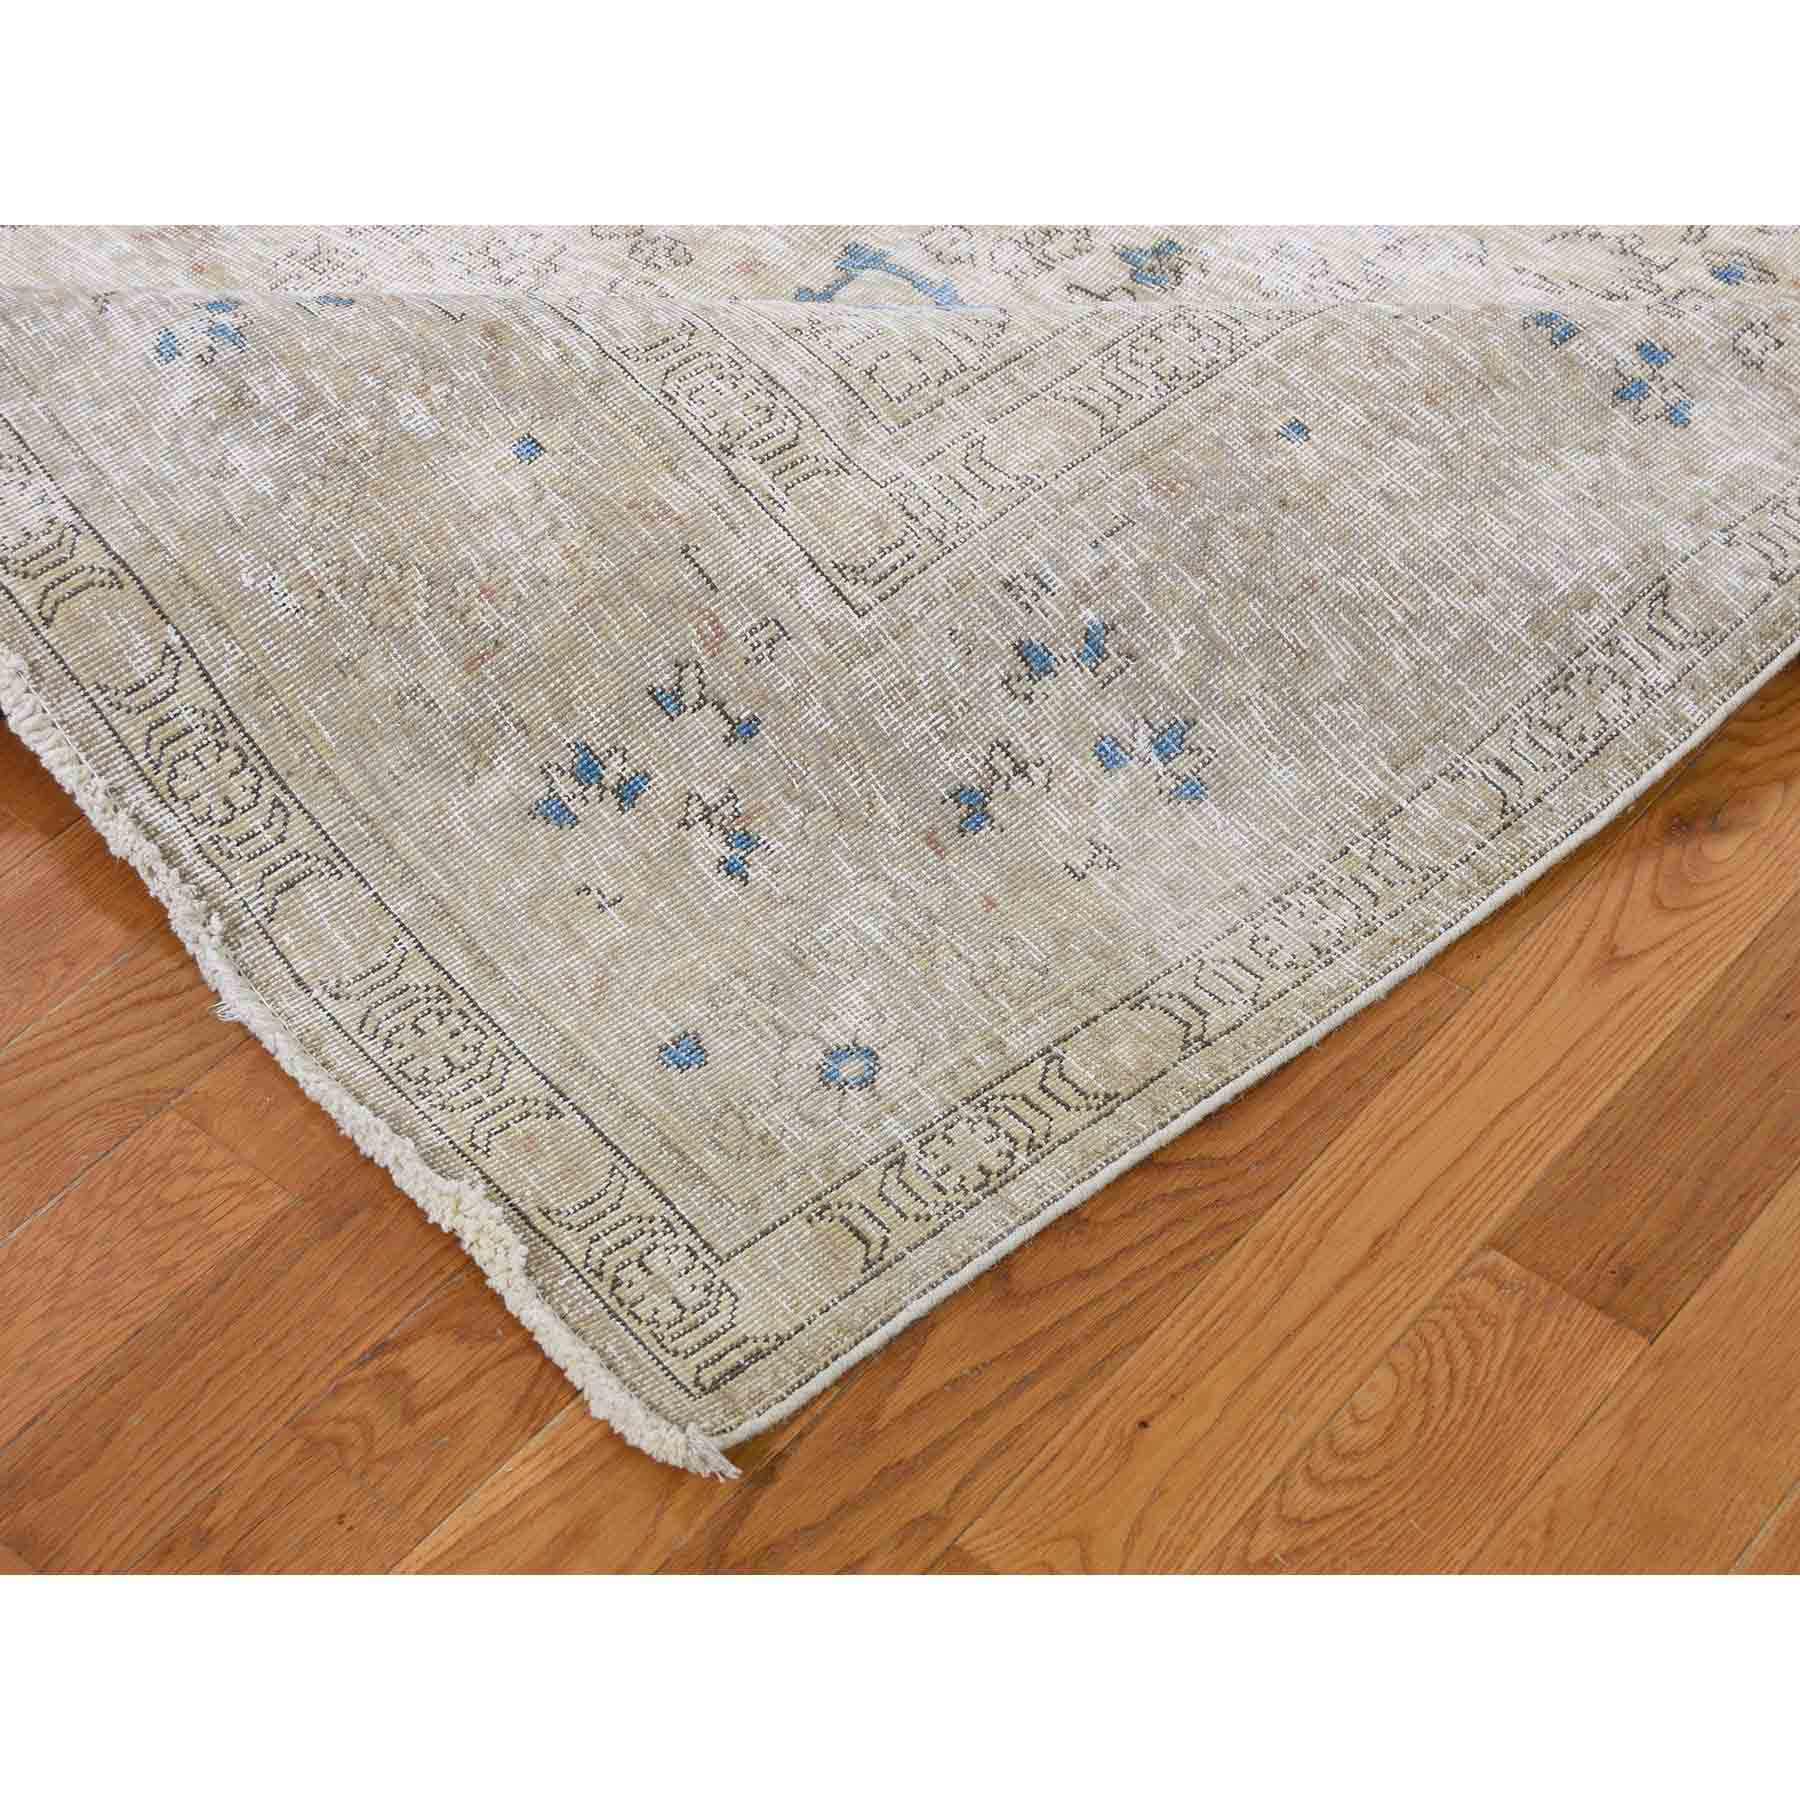 Overdyed-Vintage-Hand-Knotted-Rug-218980